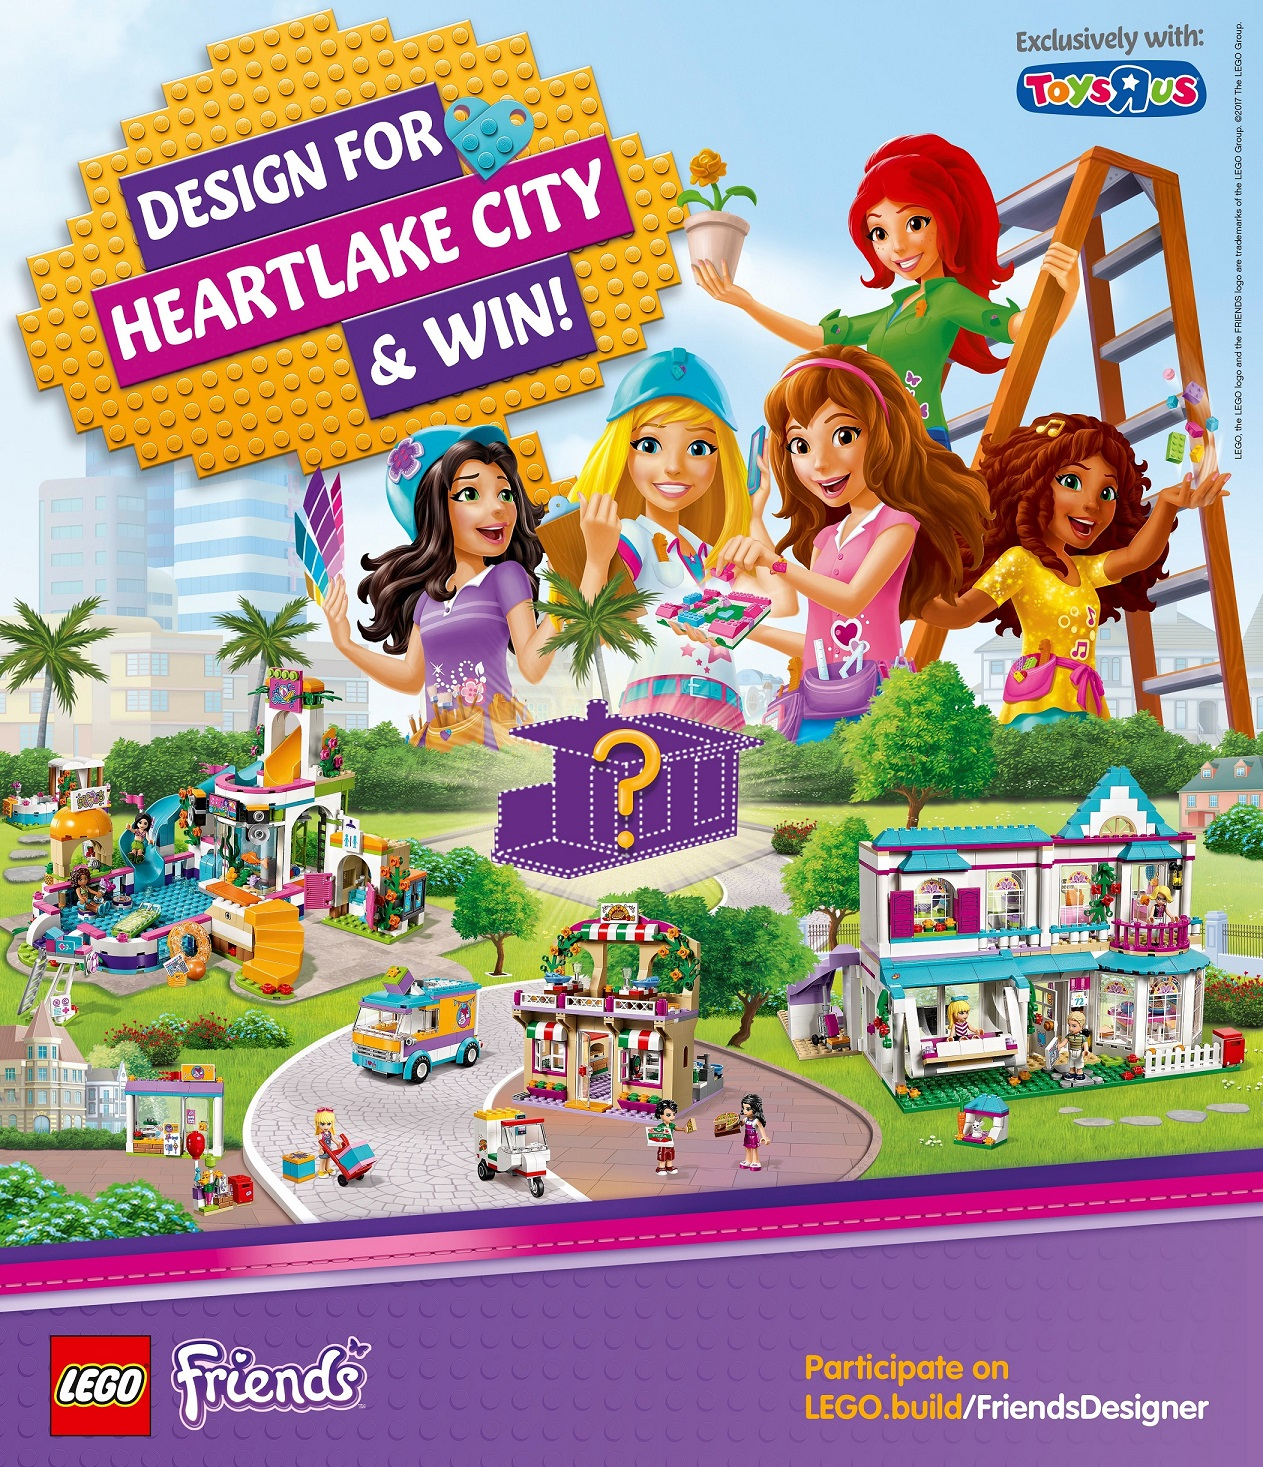 Design for Heartlake City & Win